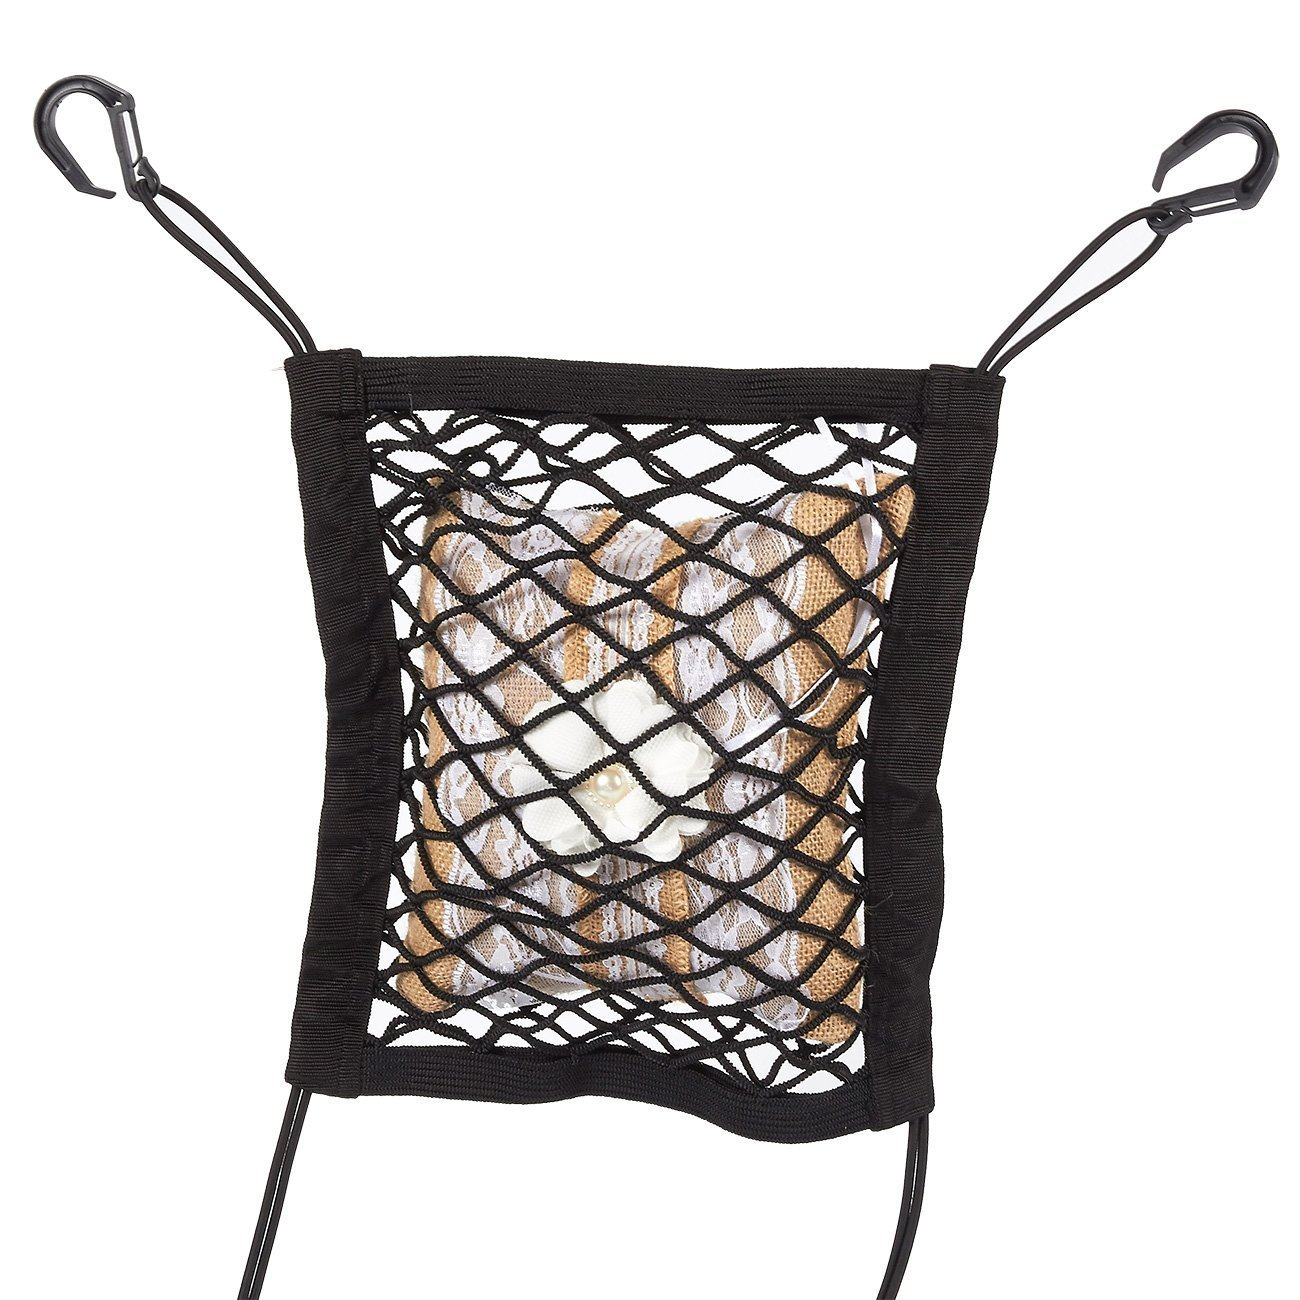 Cargo Holder Barrier Net Disturb Stopper from Children and Pets Juvale Car Seat Net Organizer 10.5 x 10.5 Inches 4350419585 Black Backseat Universal Stretchy Mesh Net Storage